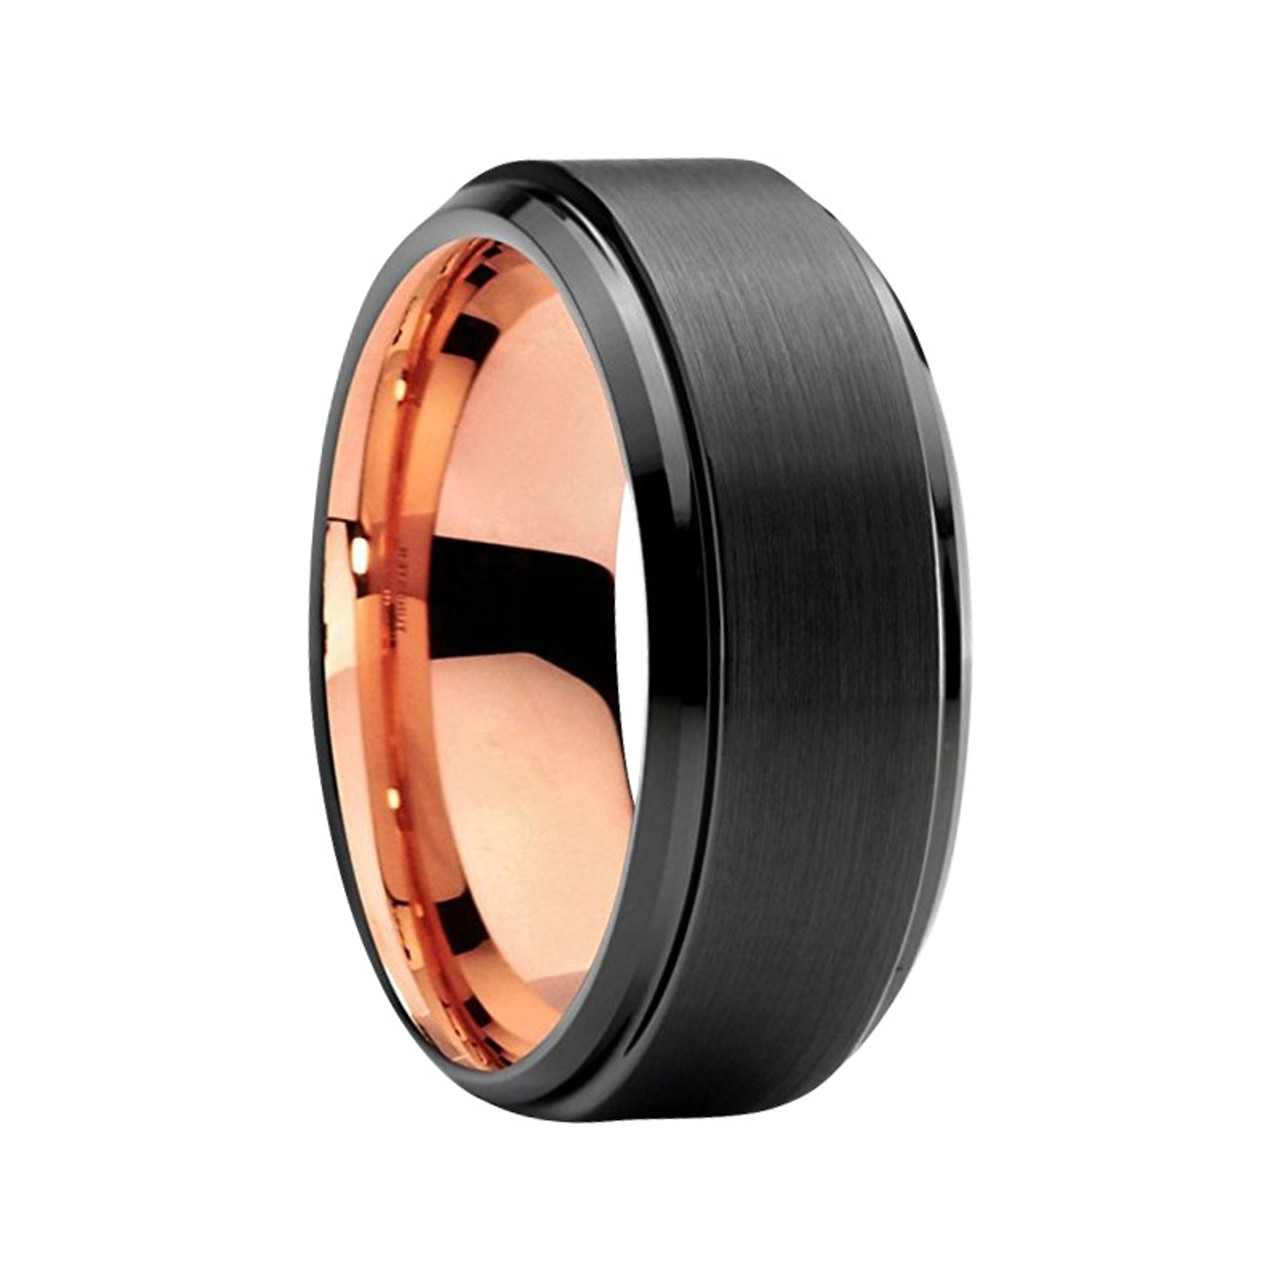 It is an image of 32 mm Mens Wedding Bands - Black Tungsten, with Rose Gold - J32RBC